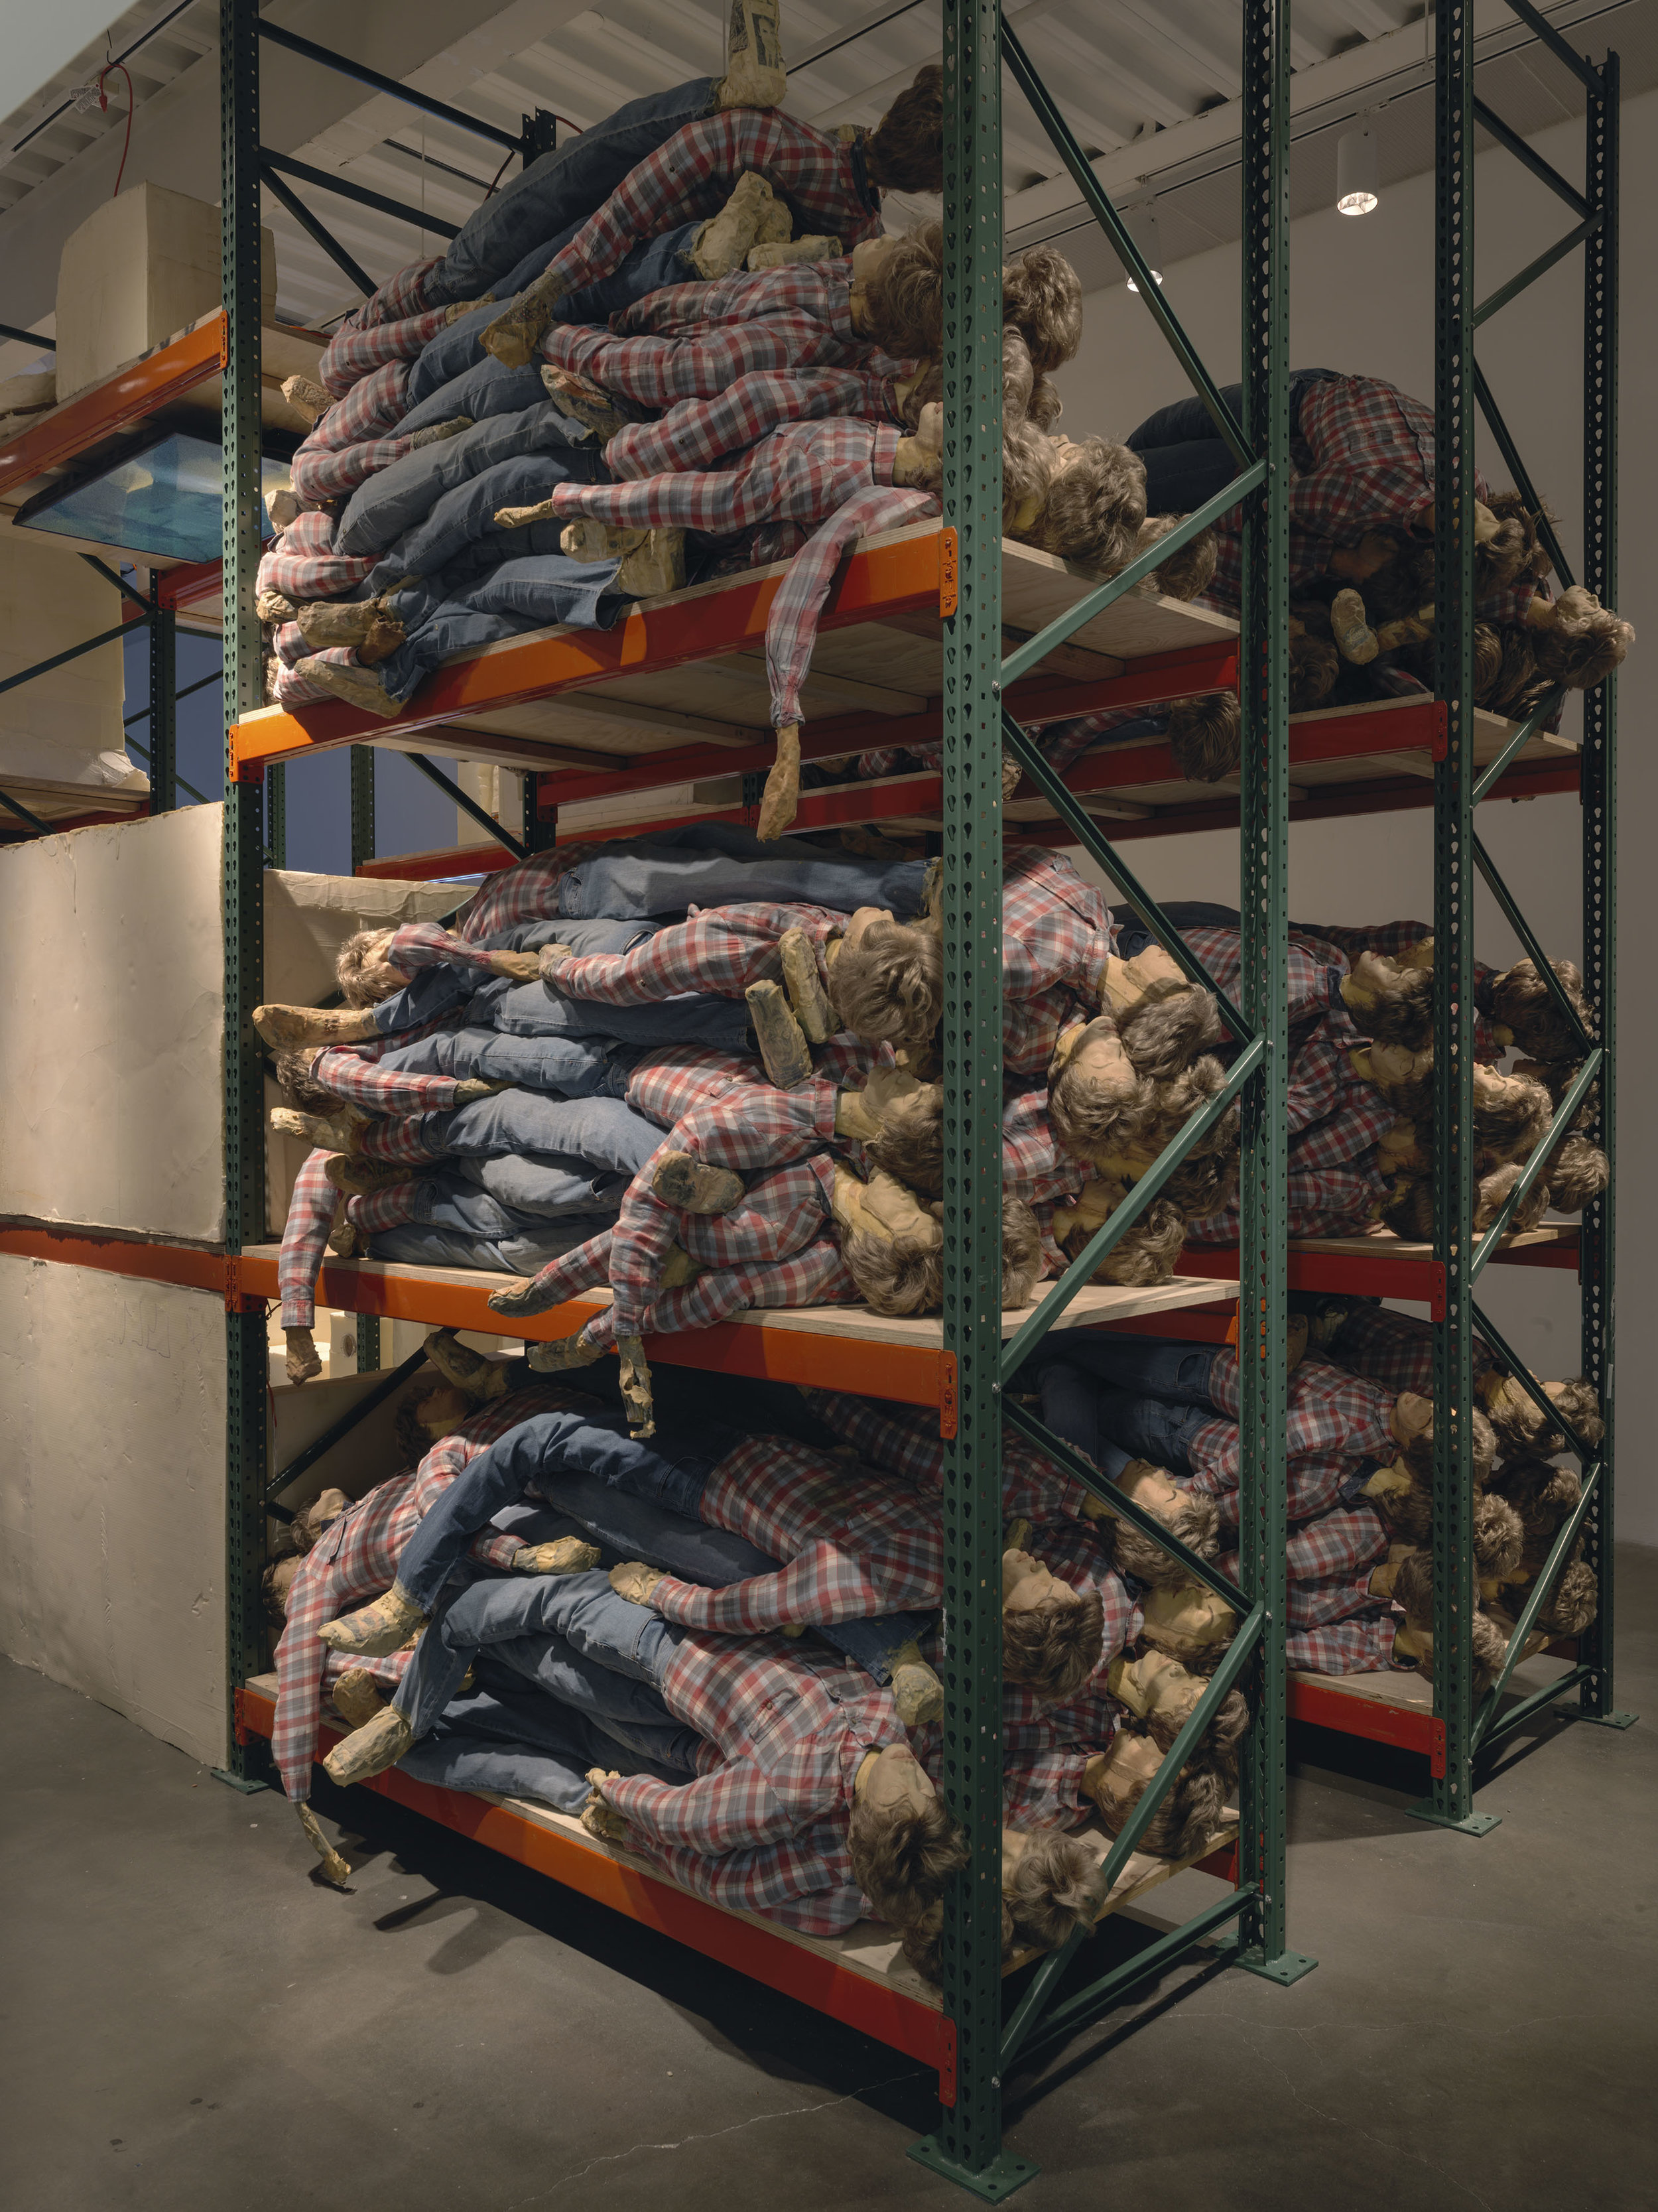 """KAARI UPSON. """"HERS"""" (2016-2017). STEEL SHELVES, LATEX, SYNTHETIC HAIR, ACRYLIC, FABRIC, PAPER, URETHANE FOAM, DUCT TAPE, CAT HAIR AND DEBRIS. DIMENSIONS VARIABLE. © KAARI UPSON. COURTESY OF THE ARTIST, SPRÜTH MAGERS AND MASSIMO DE CARLO. PHOTO BY MARIS HUTCHINSON / EPW STUDIO"""